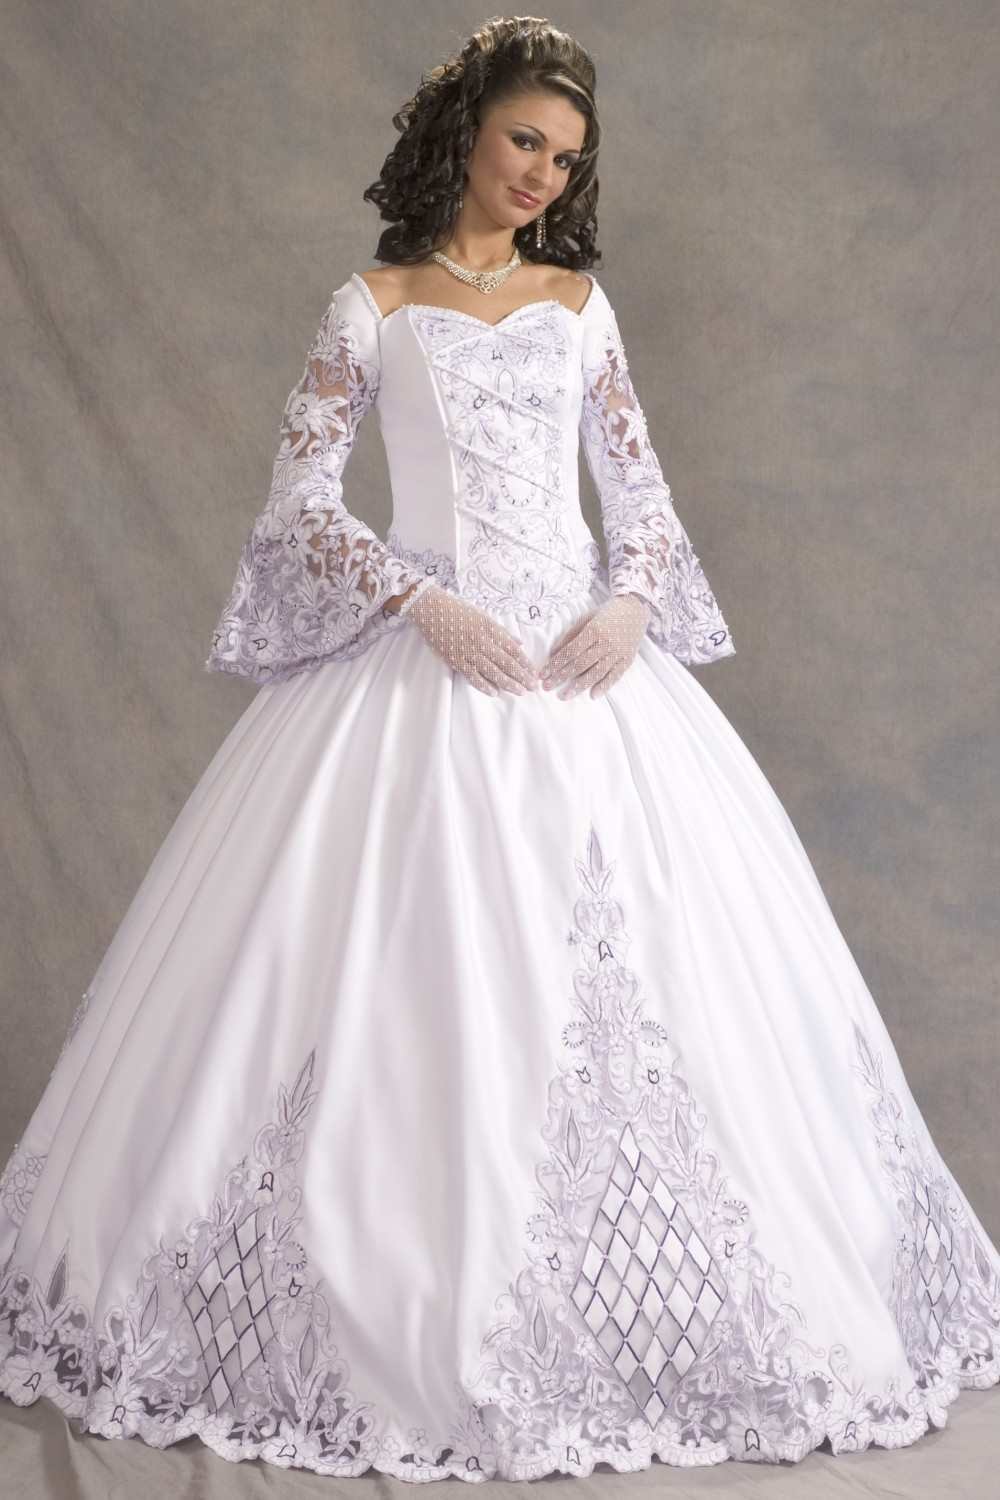 wedding dresses with sleeves cheapest wedding dresses wedding dresses with sleeves wedding dresses with sleeves